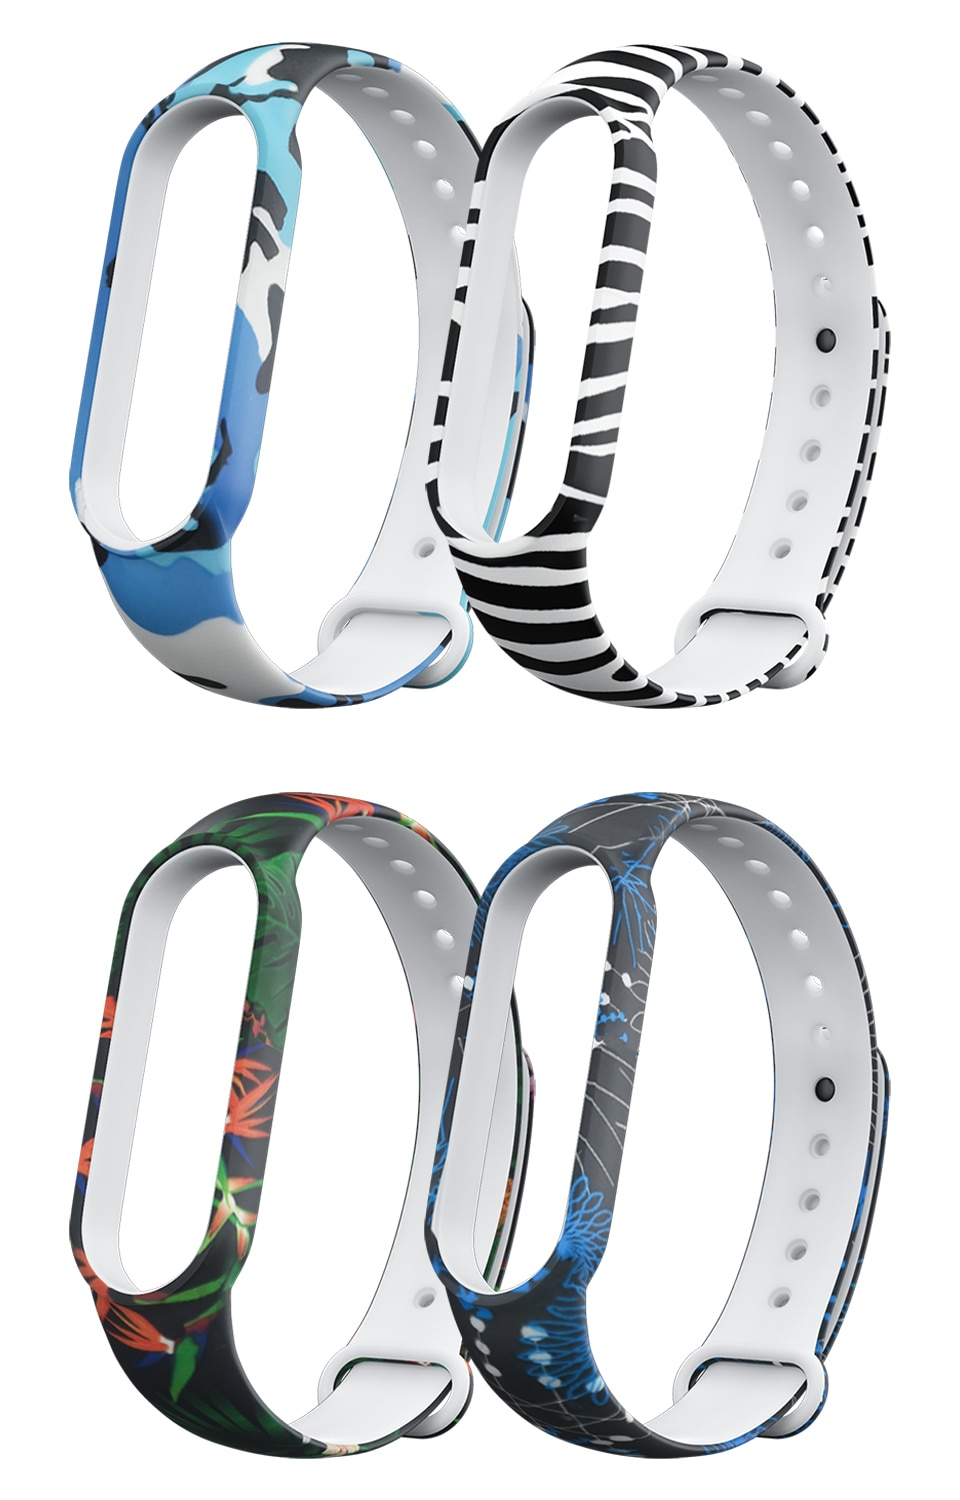 Silicone strap for xiaomi mi band 5 Silicone Soft TPU Wristband replacement Smart straps for mi band 5 bracelets Bands Colorful for xiaomi mi band 2 strap miband 2 strap bands colorful starry sky all stars splash soft rubber silicone watch straps bands new